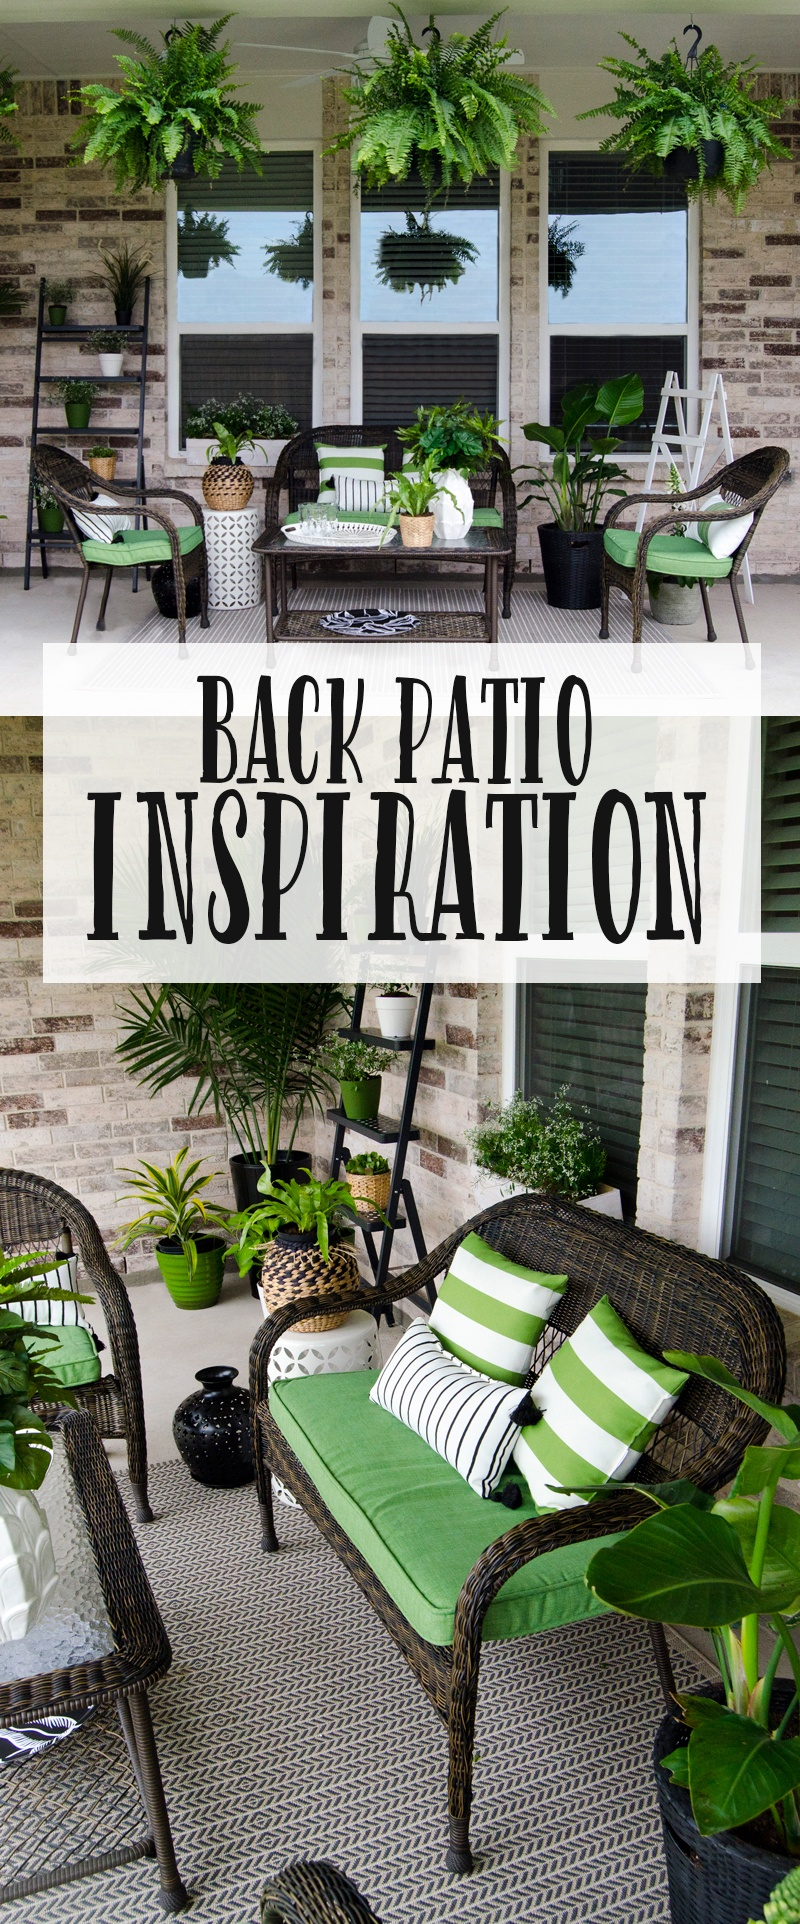 Patio Inspiration with Lowes by Lindi Haws of Love The Day on Deck Inspiration  id=54557